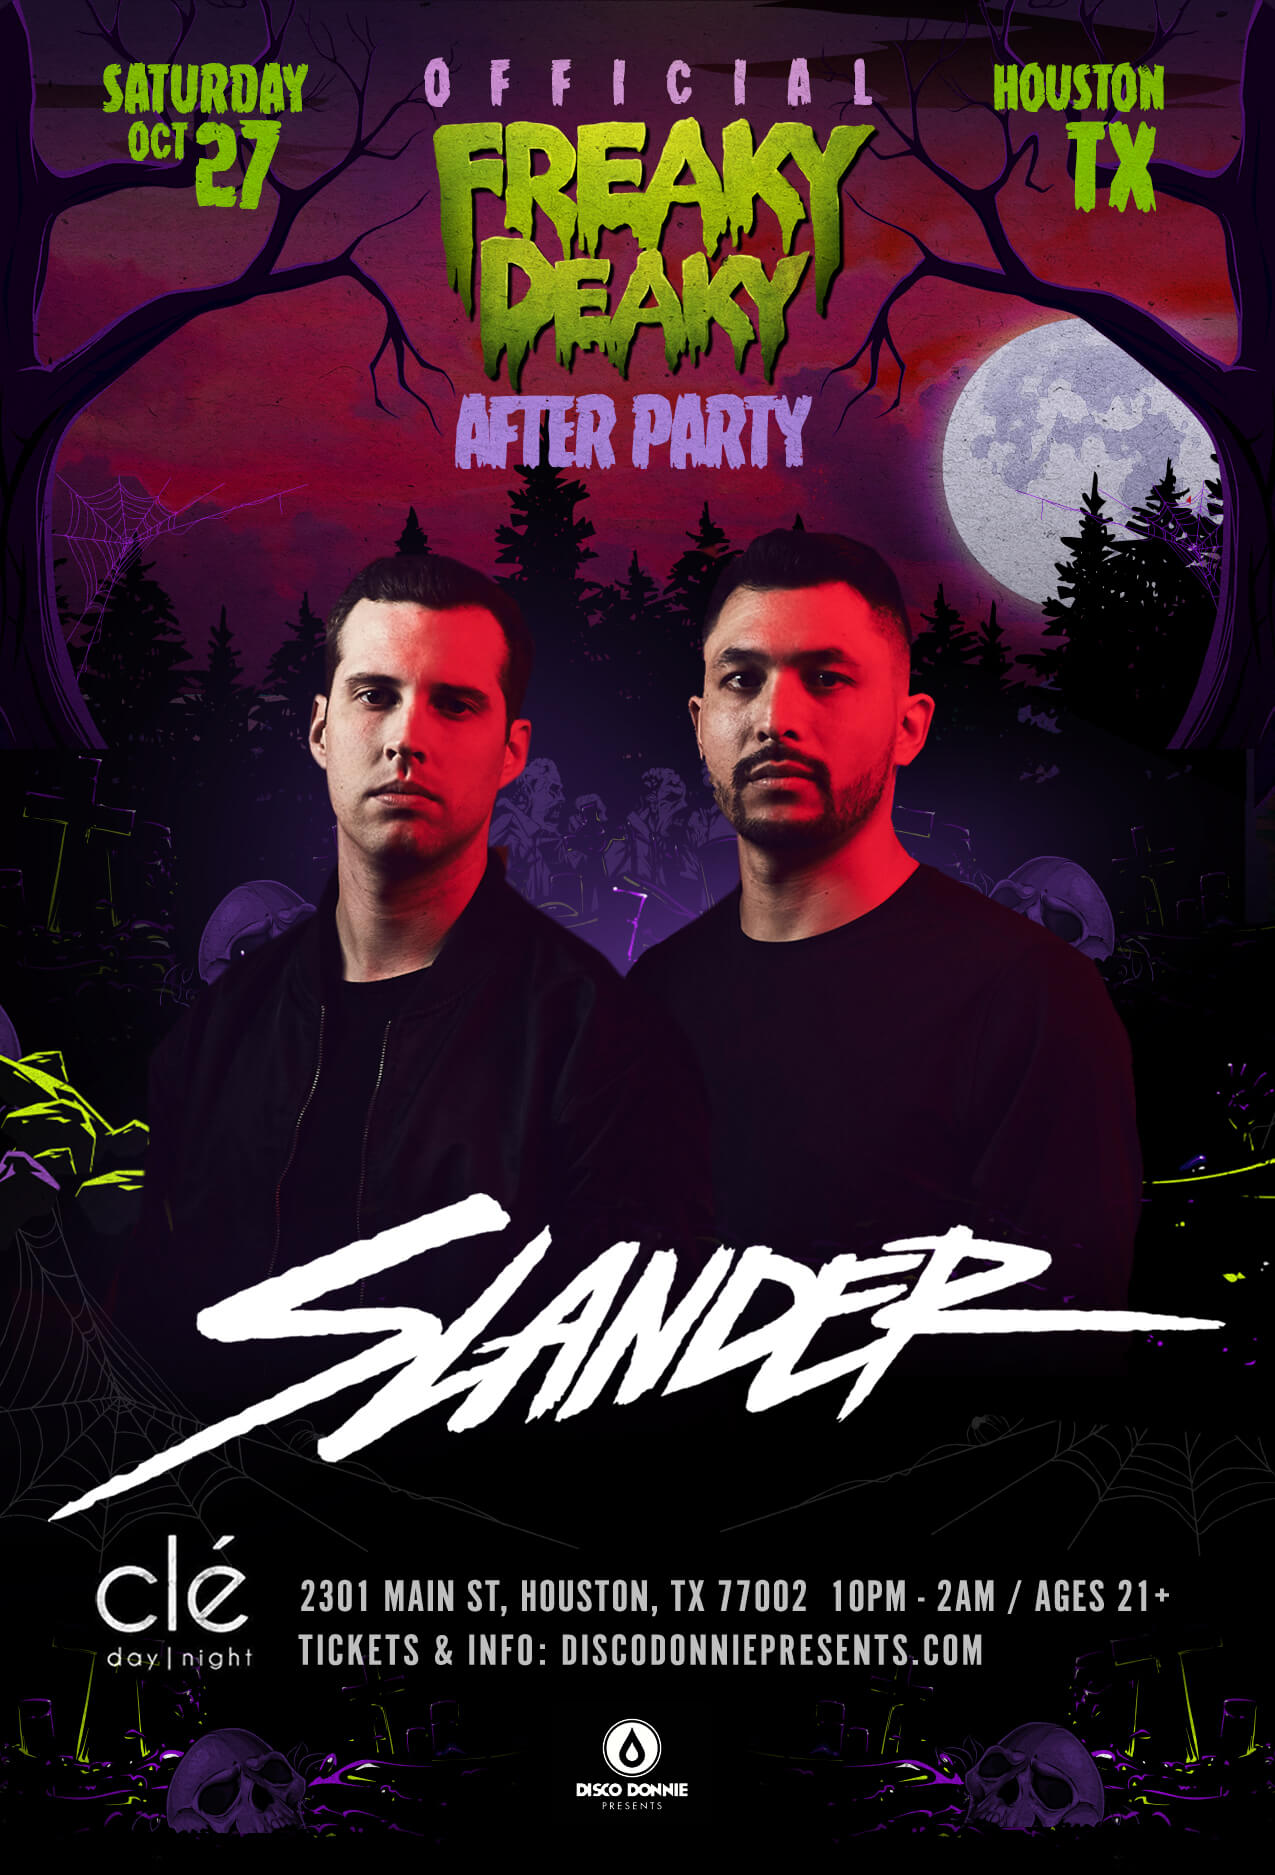 afterparty with slander on saturday